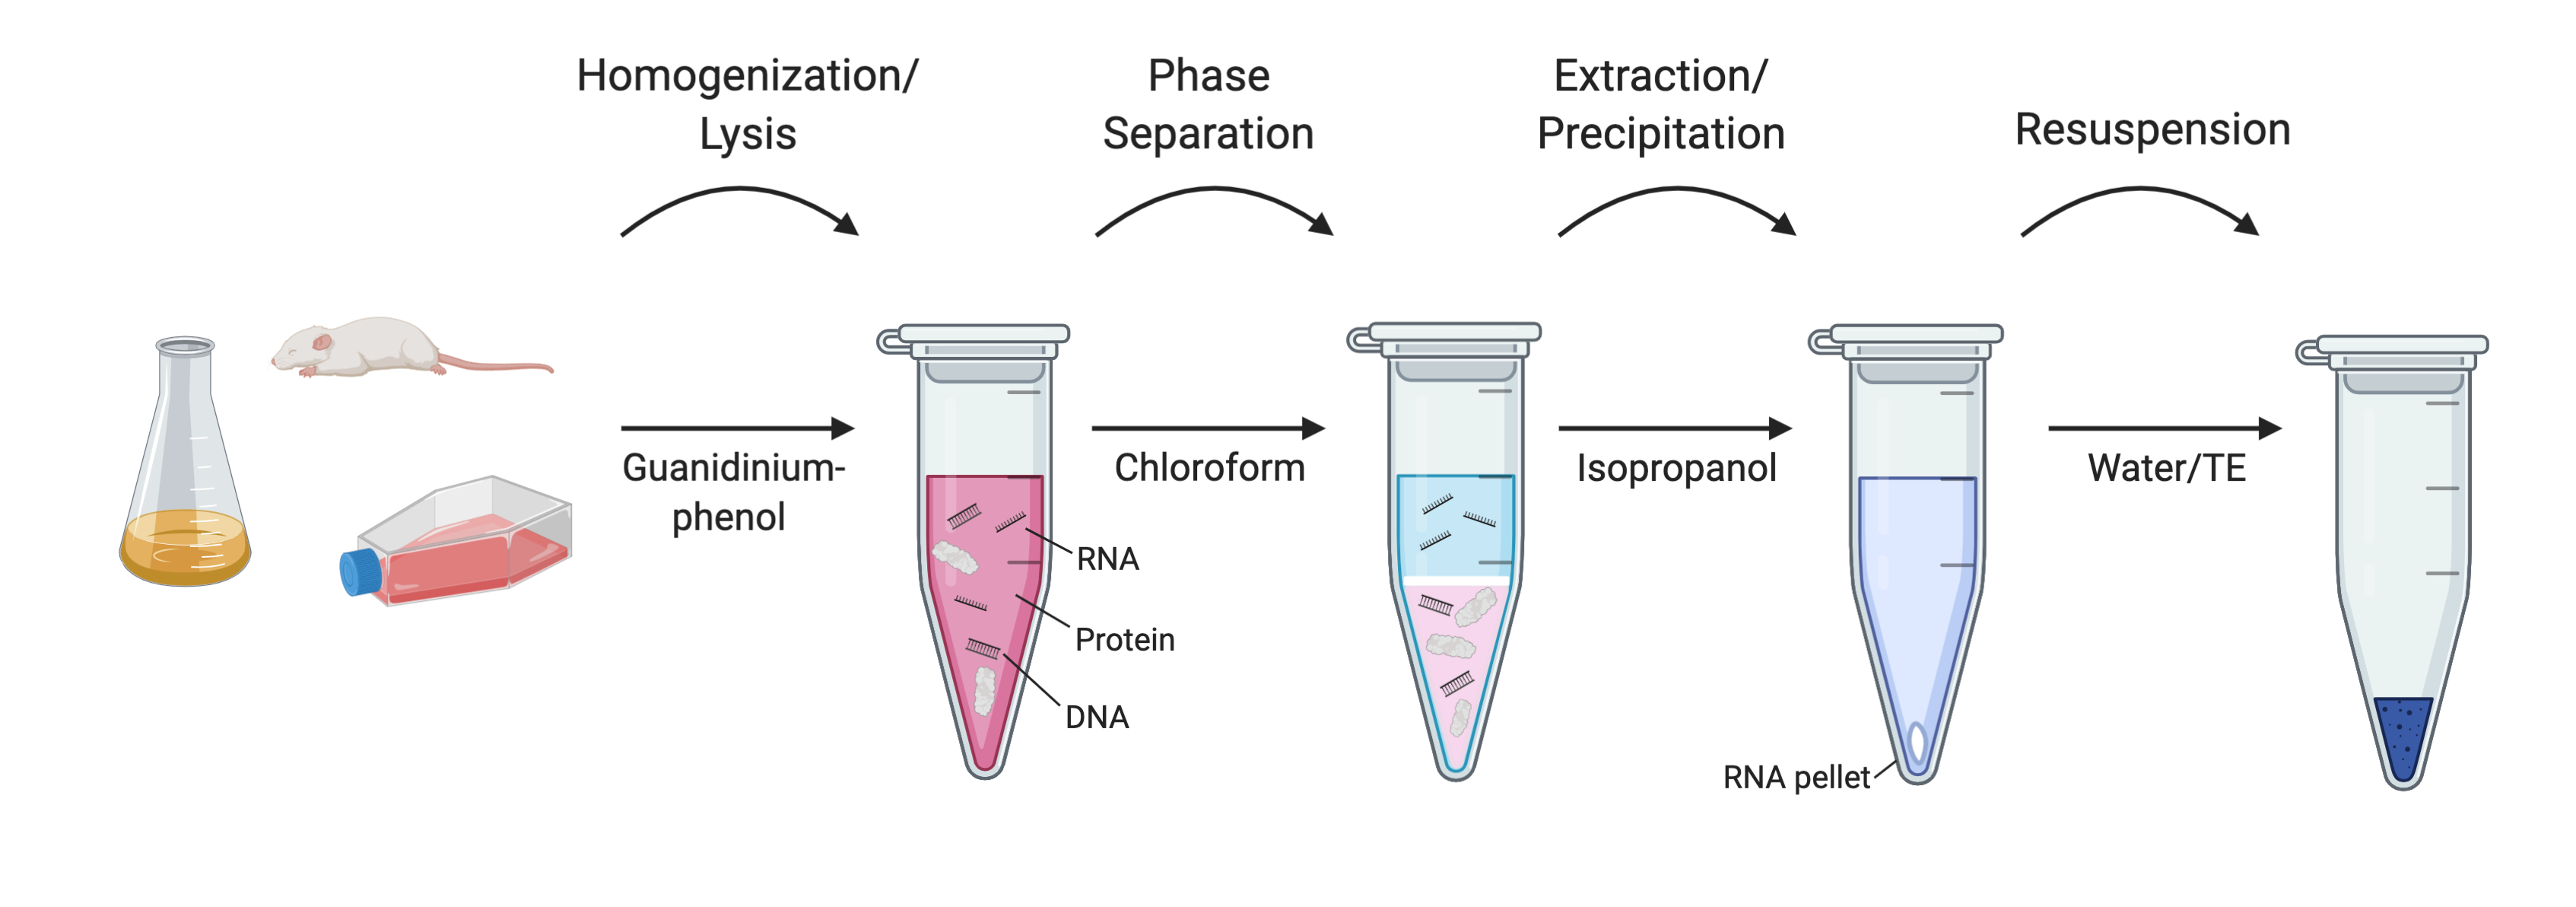 Rna Extraction Without A Kit